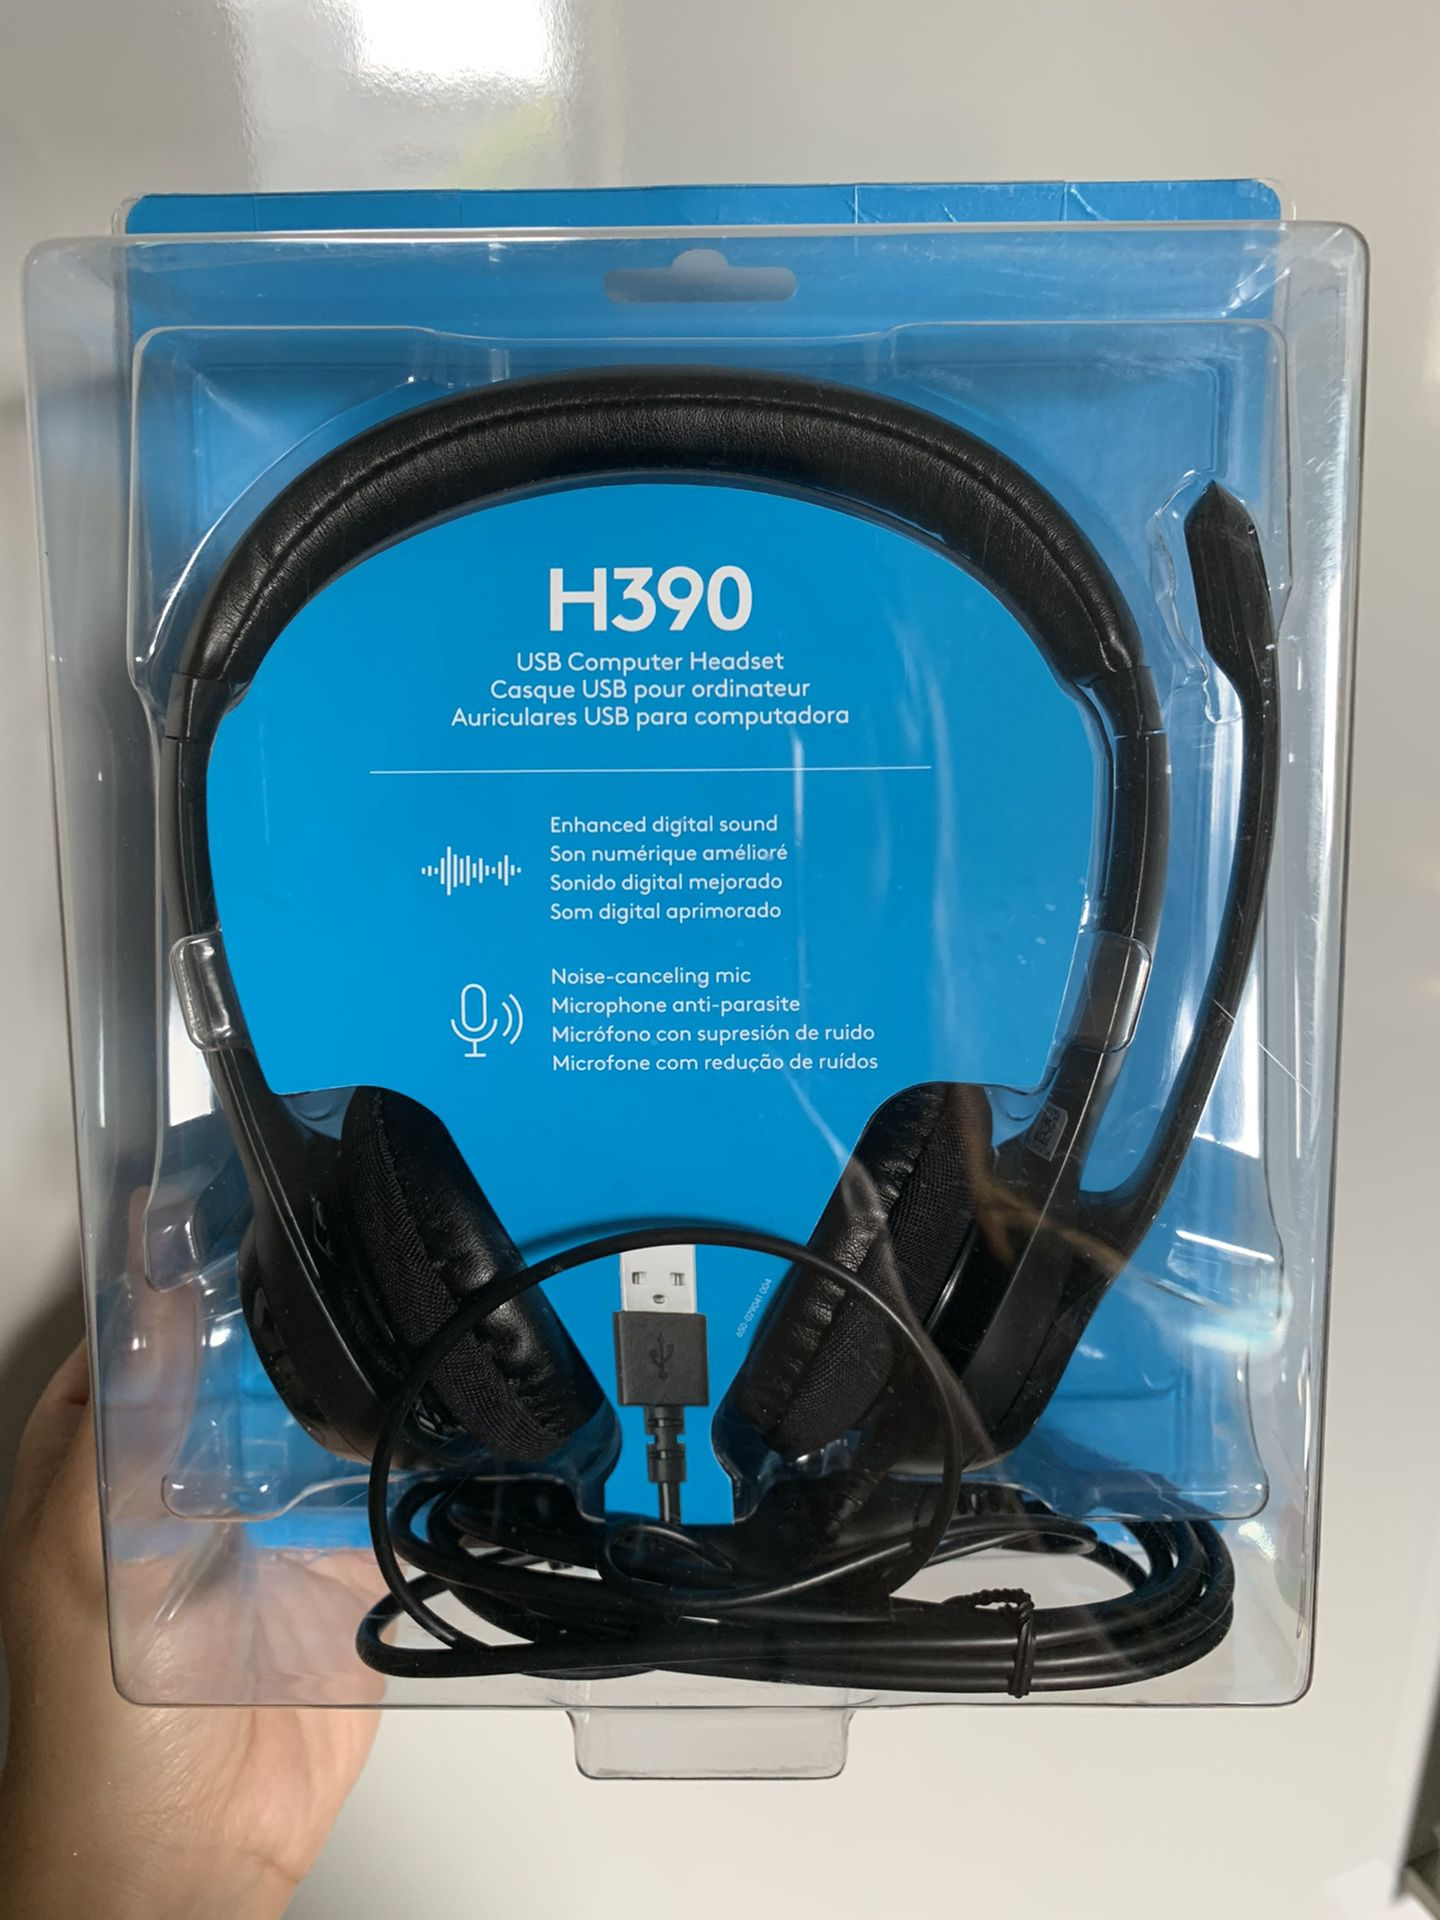 Logitech H390 USB Computer Headset (BRAND NEW) w/ Noise-cancelling Mic